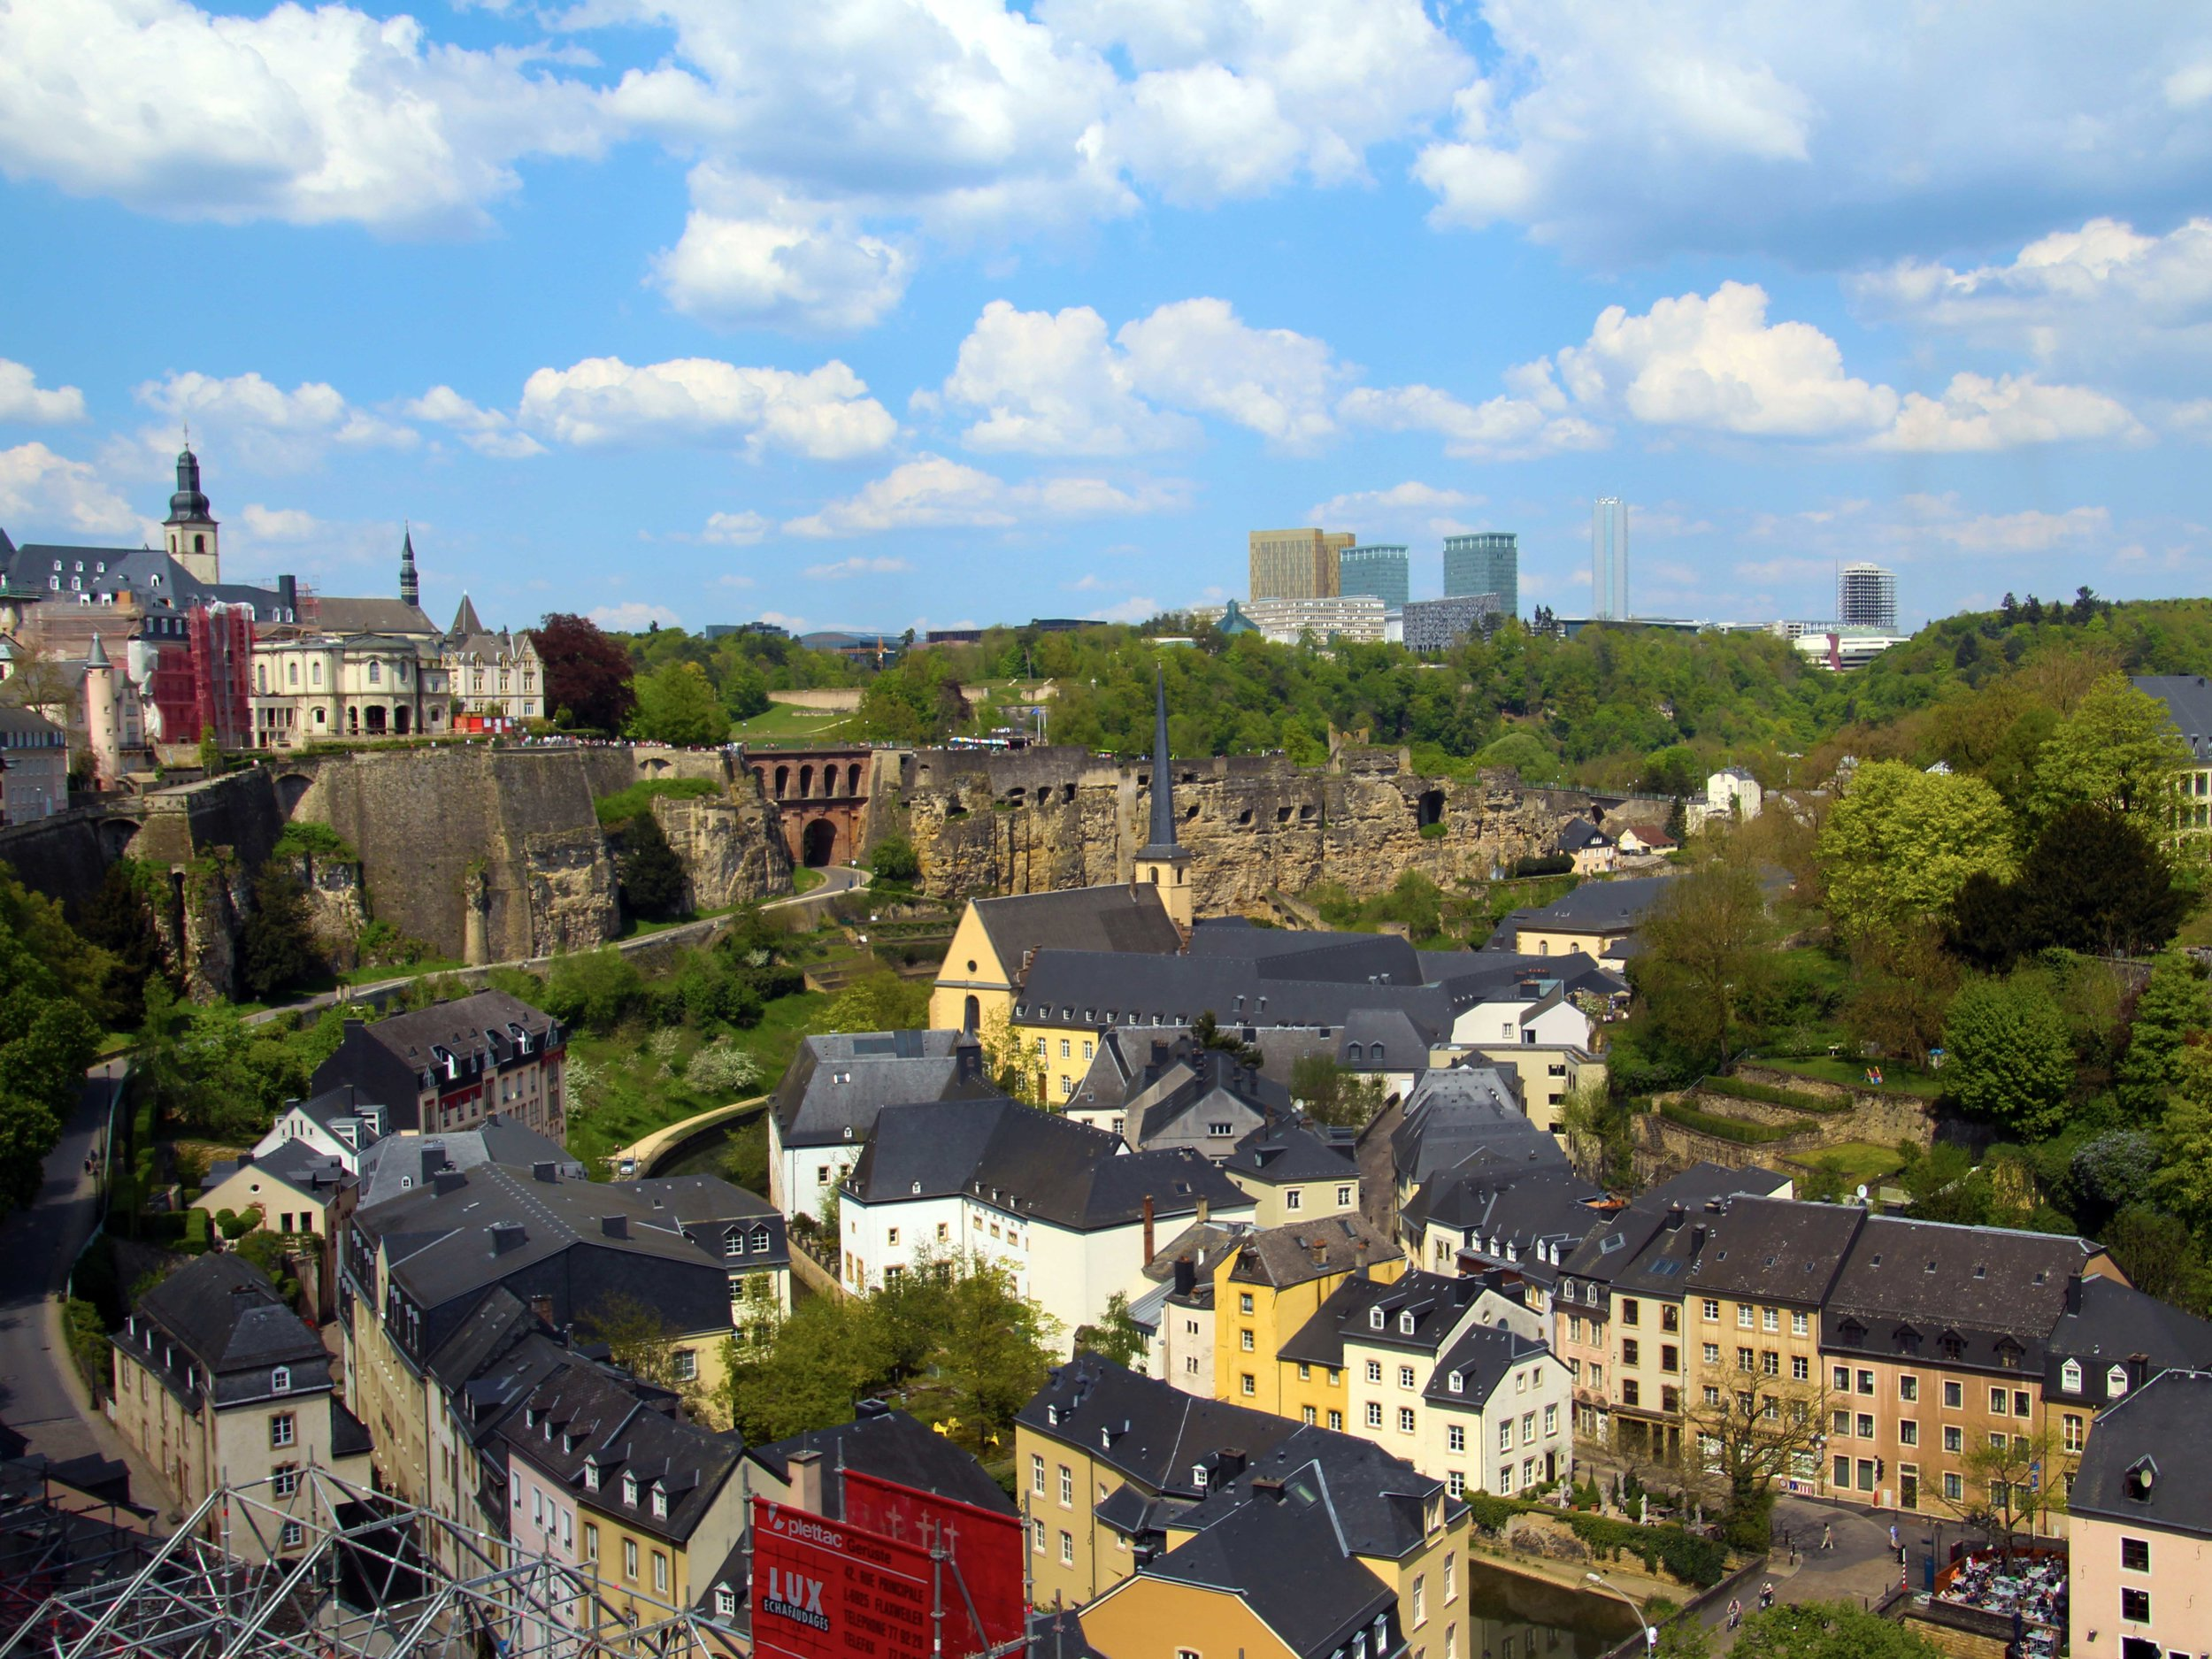 View on Luxembourg's Old Town district, built on the ruins of an old Roman wall. © Joanne DiBona